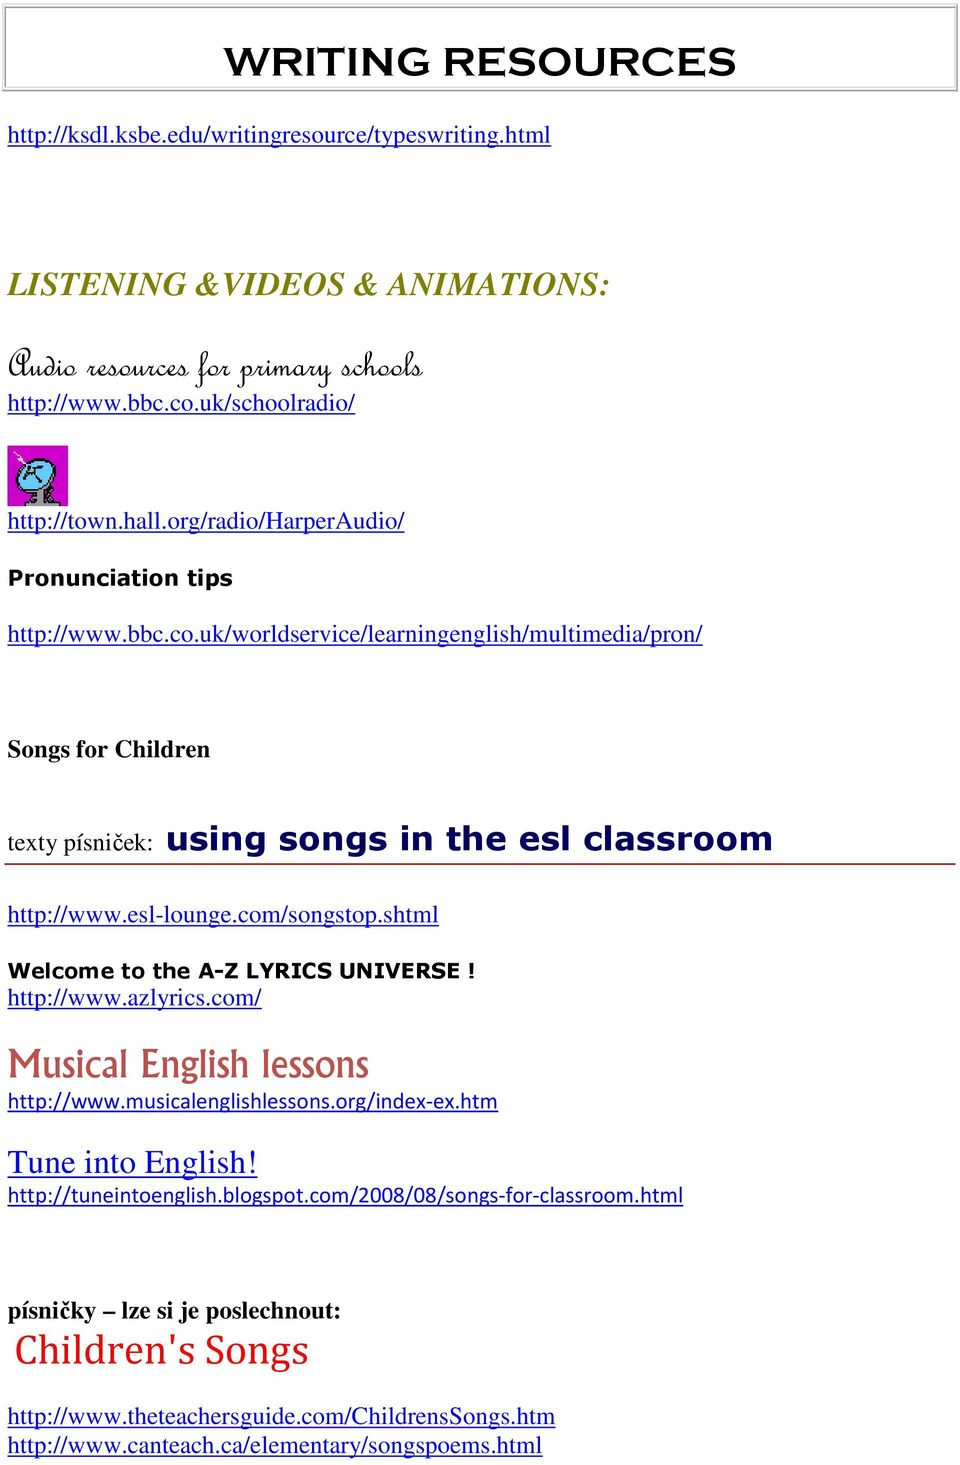 esl-lounge.com/songstop.shtml Welcome to the A-Z LYRICS UNIVERSE! http://www.azlyrics.com/ Musical English lessons http://www.musicalenglishlessons.org/index-ex.htm Tune into English!